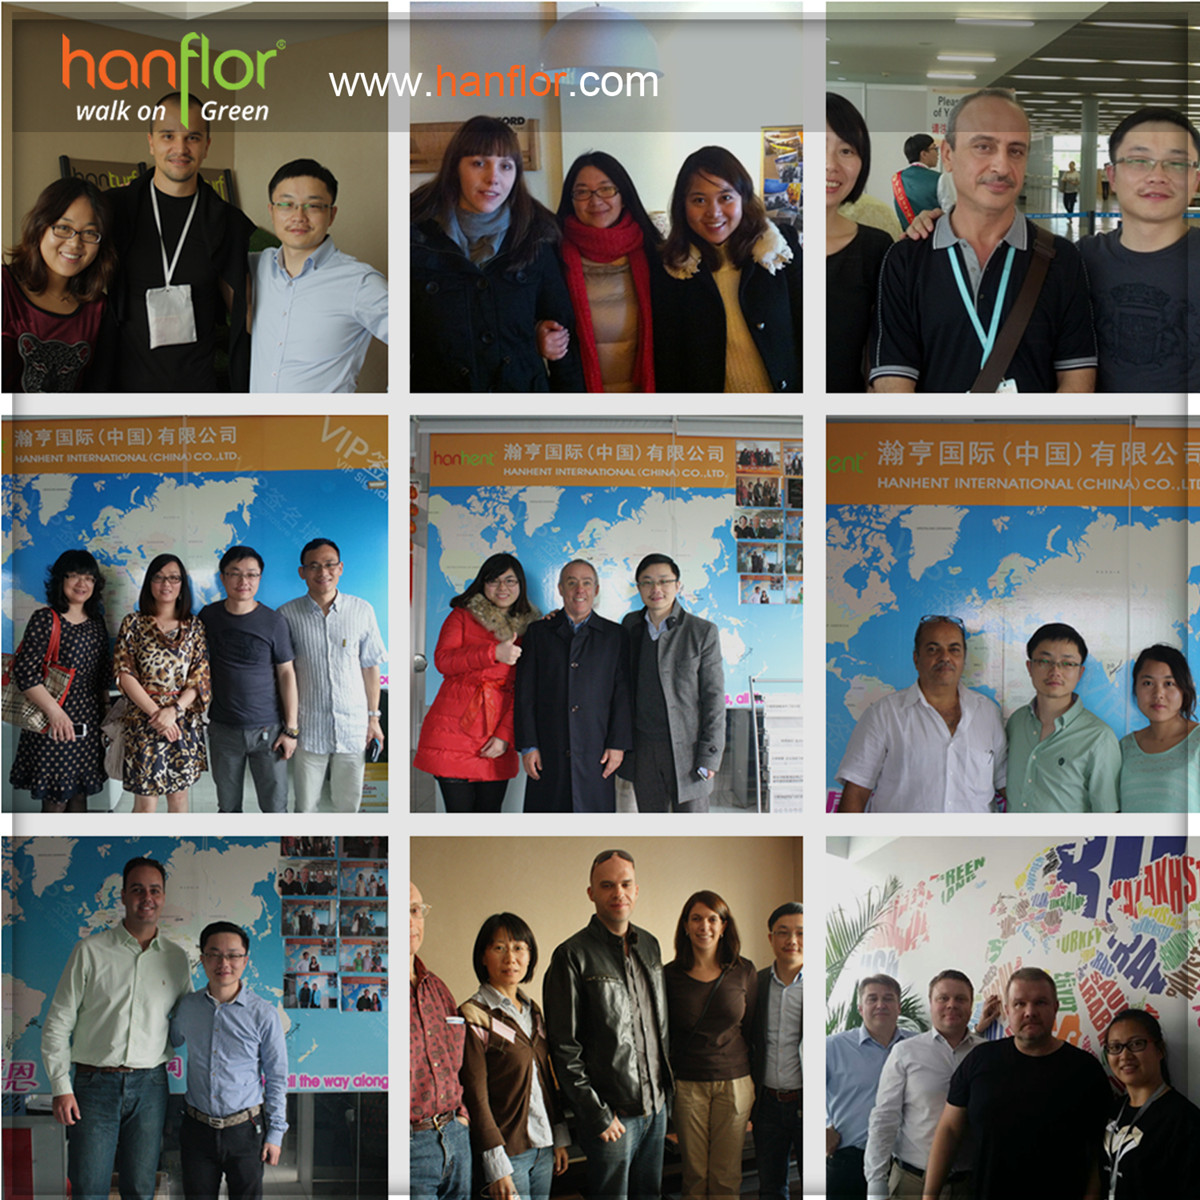 Customers:Many customer and clients visit our office and check the pvc floor, confirm the cooperation with us. Many of them we have cooperated for more than 5years and with good friendship, thanks for the trust of our clients and customers, we will do better to support our clients and customers.plastic floor,pvc floor, Vinyl floor, plastic flooring, pvc flooring, Vinyl flooring, pvc plank, vinyl plank, pvc tile, vinyl tile, click vinyl flooring, interlocking vinyl flooring, unilin click flooring, unilin click vinyl flooring, click pvc flooring, interlocking pvc flooring, unilin click vinyl flooring, unilin click pvc flooring